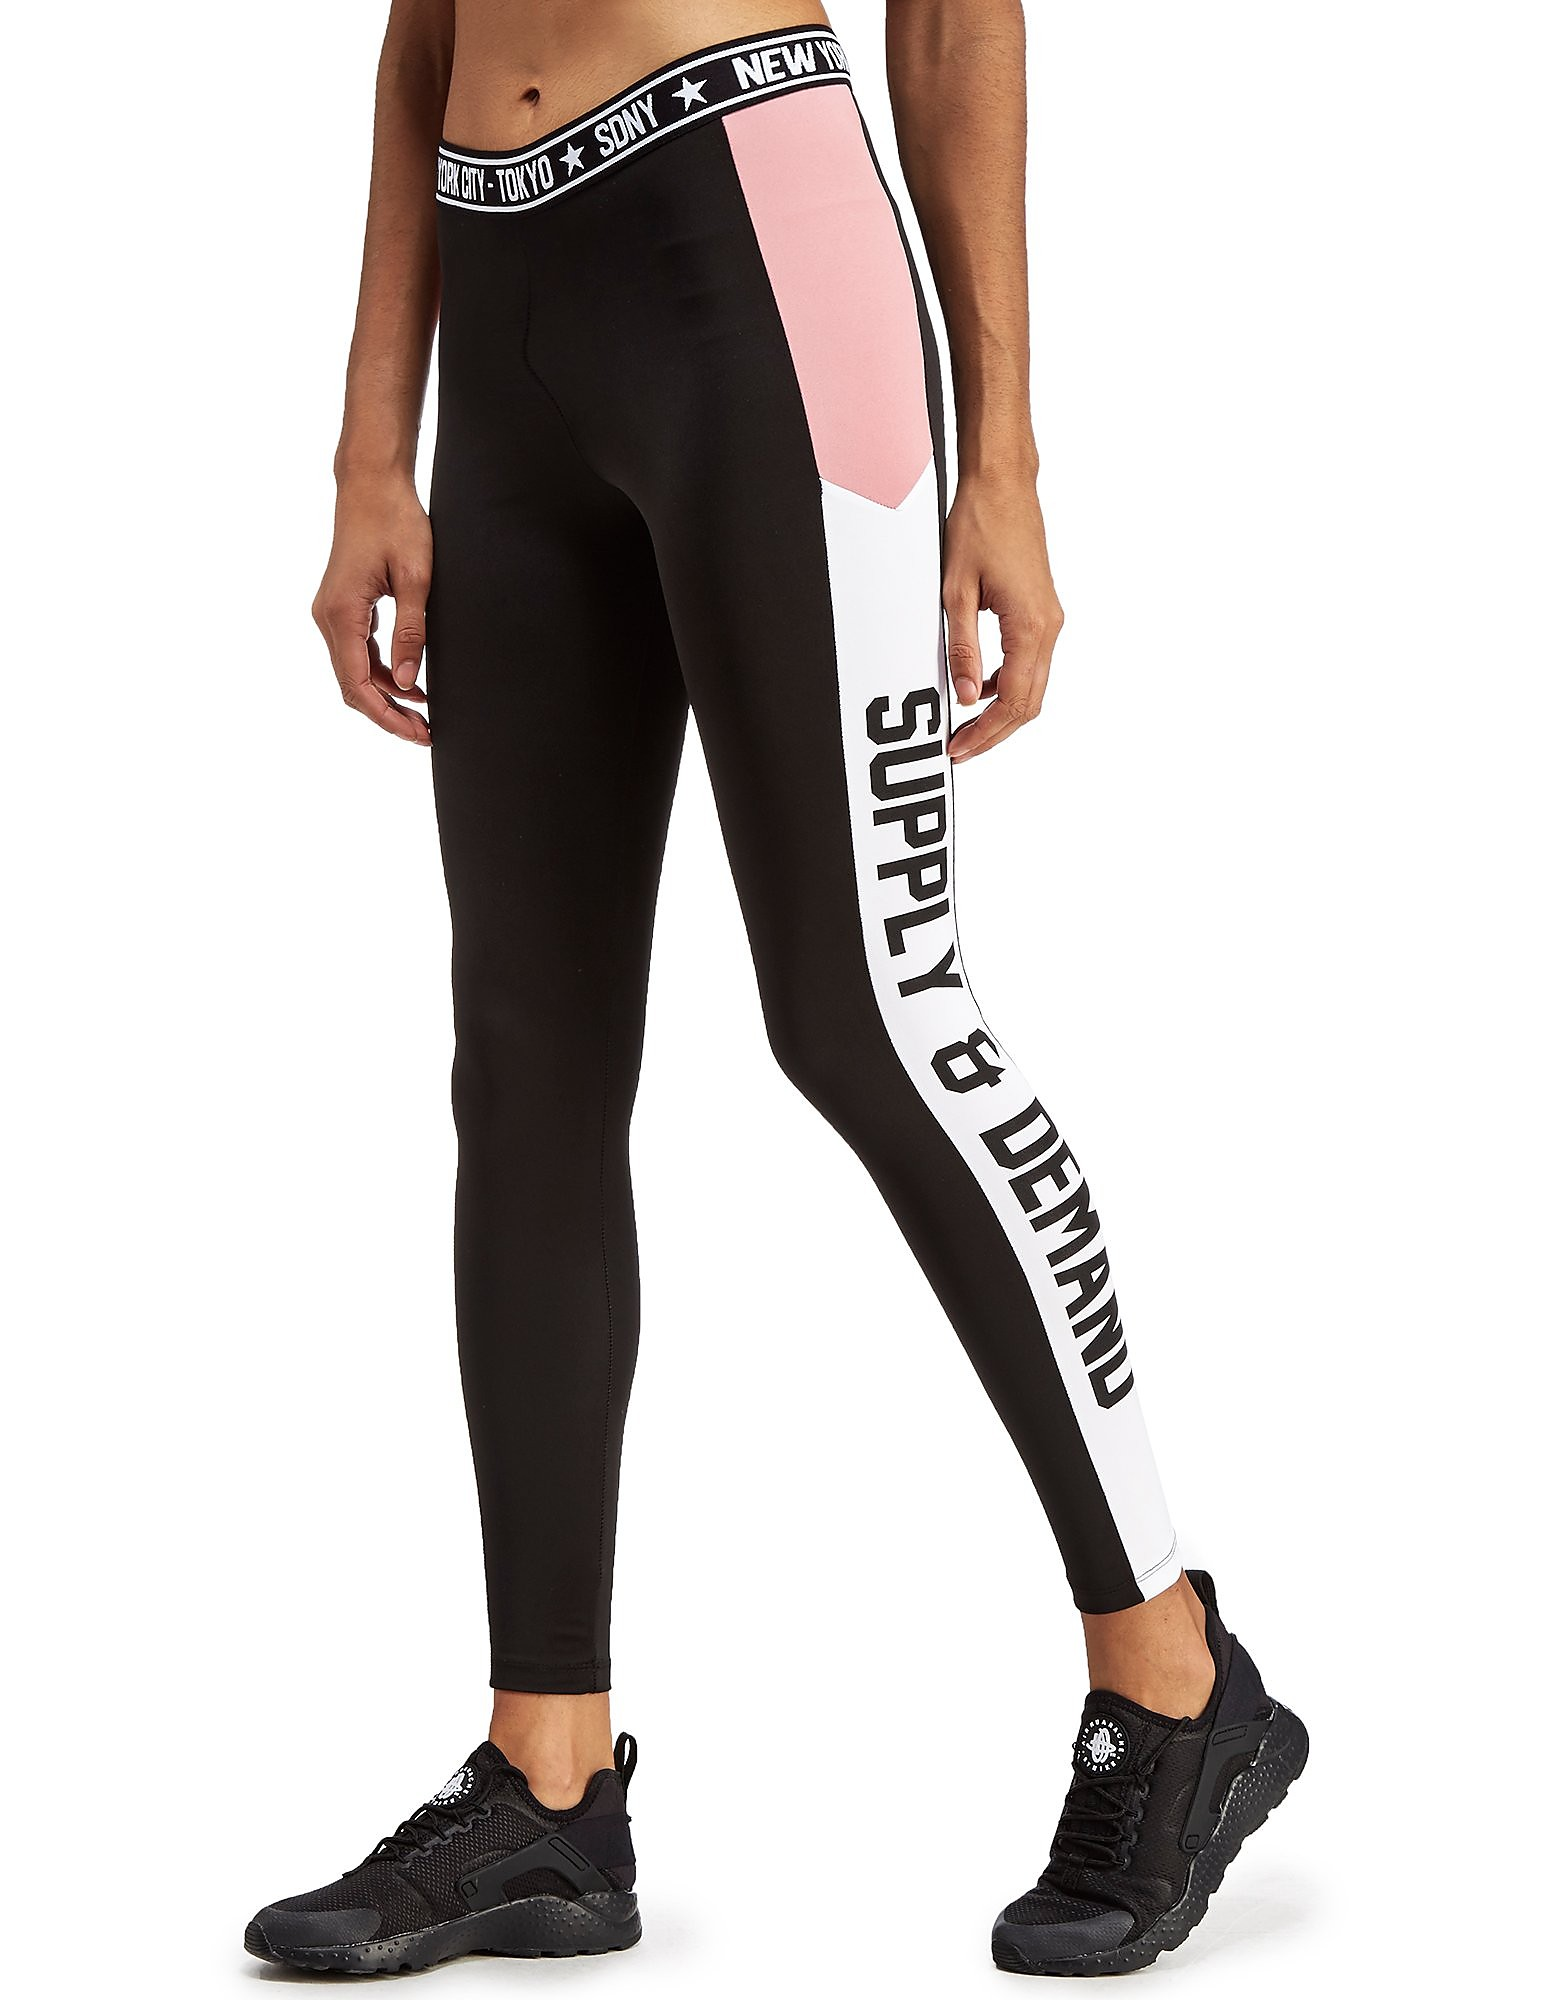 Supply & Demand Colour Block Leggings